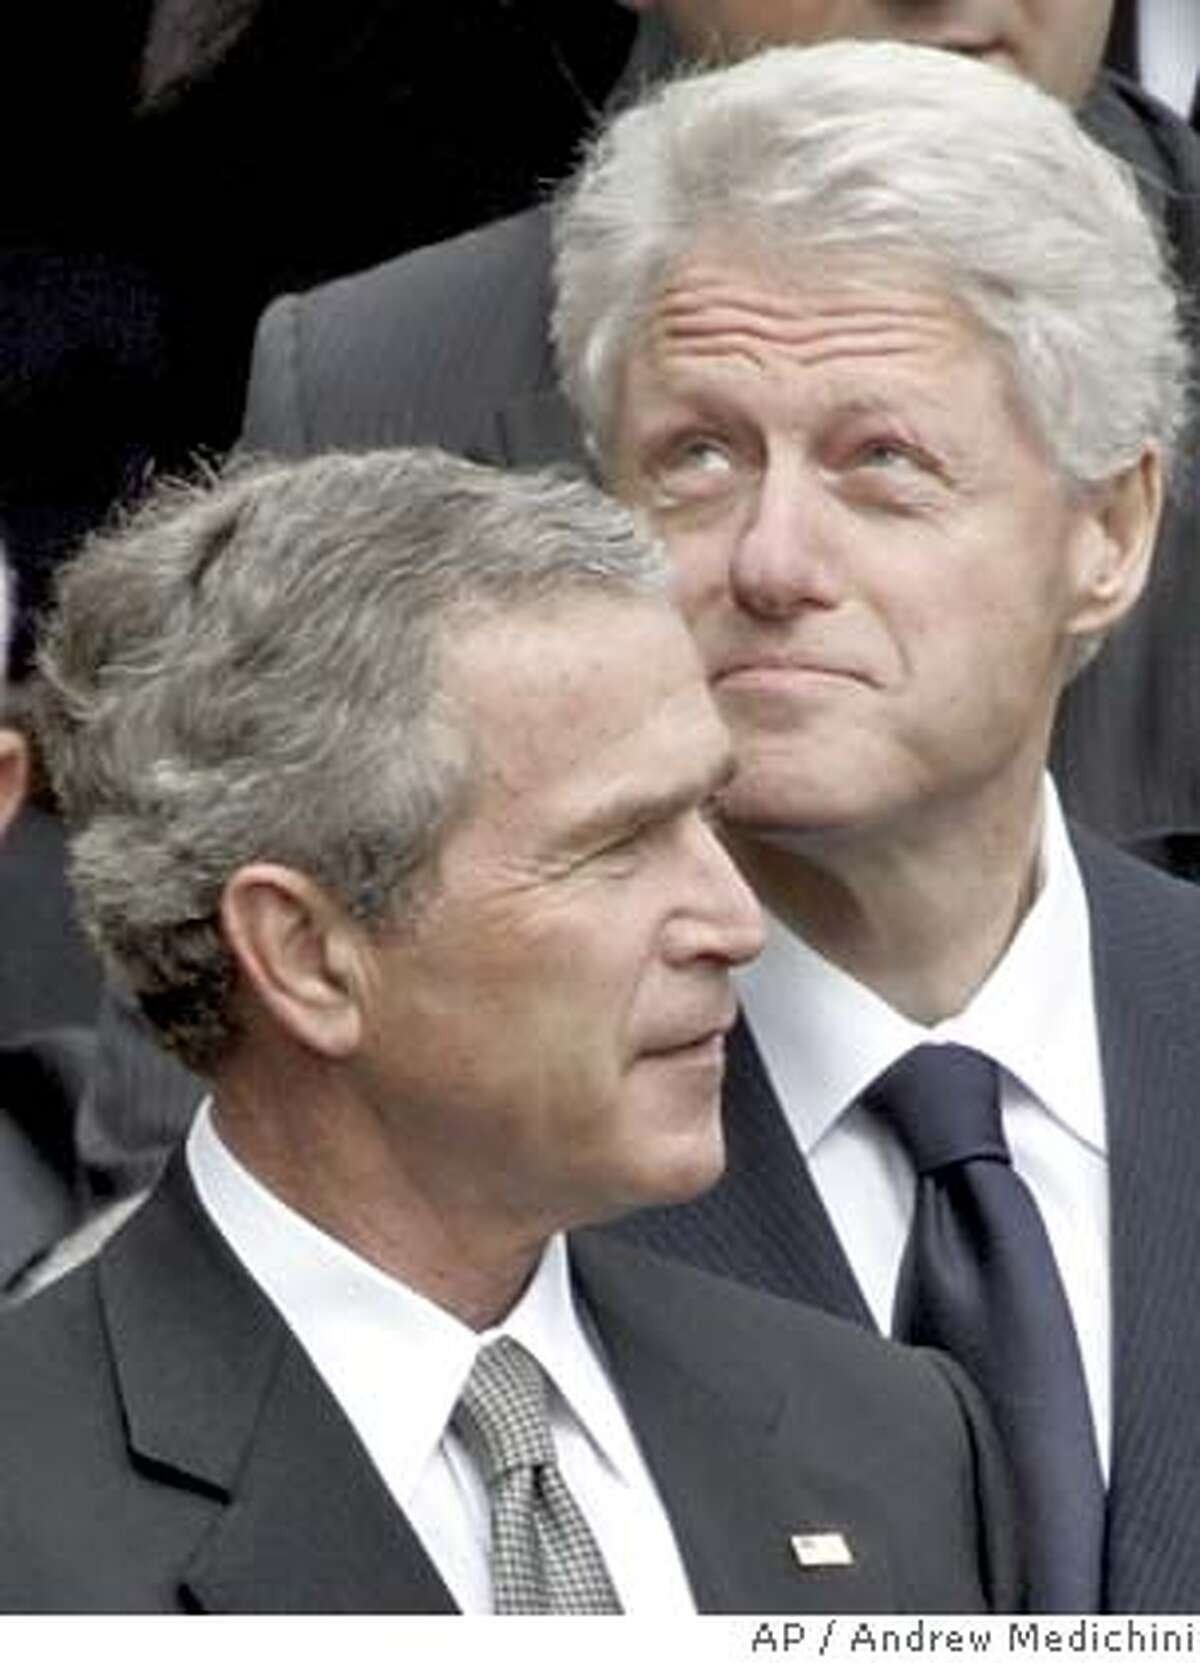 Former US President Bill Clinton looks up as President George Bush looks on after the funeral mass for Pope John Paul II in St. Peter's Square at the Vatican, Friday, April 8, 2005. (AP Photo/Andrew Medichini)